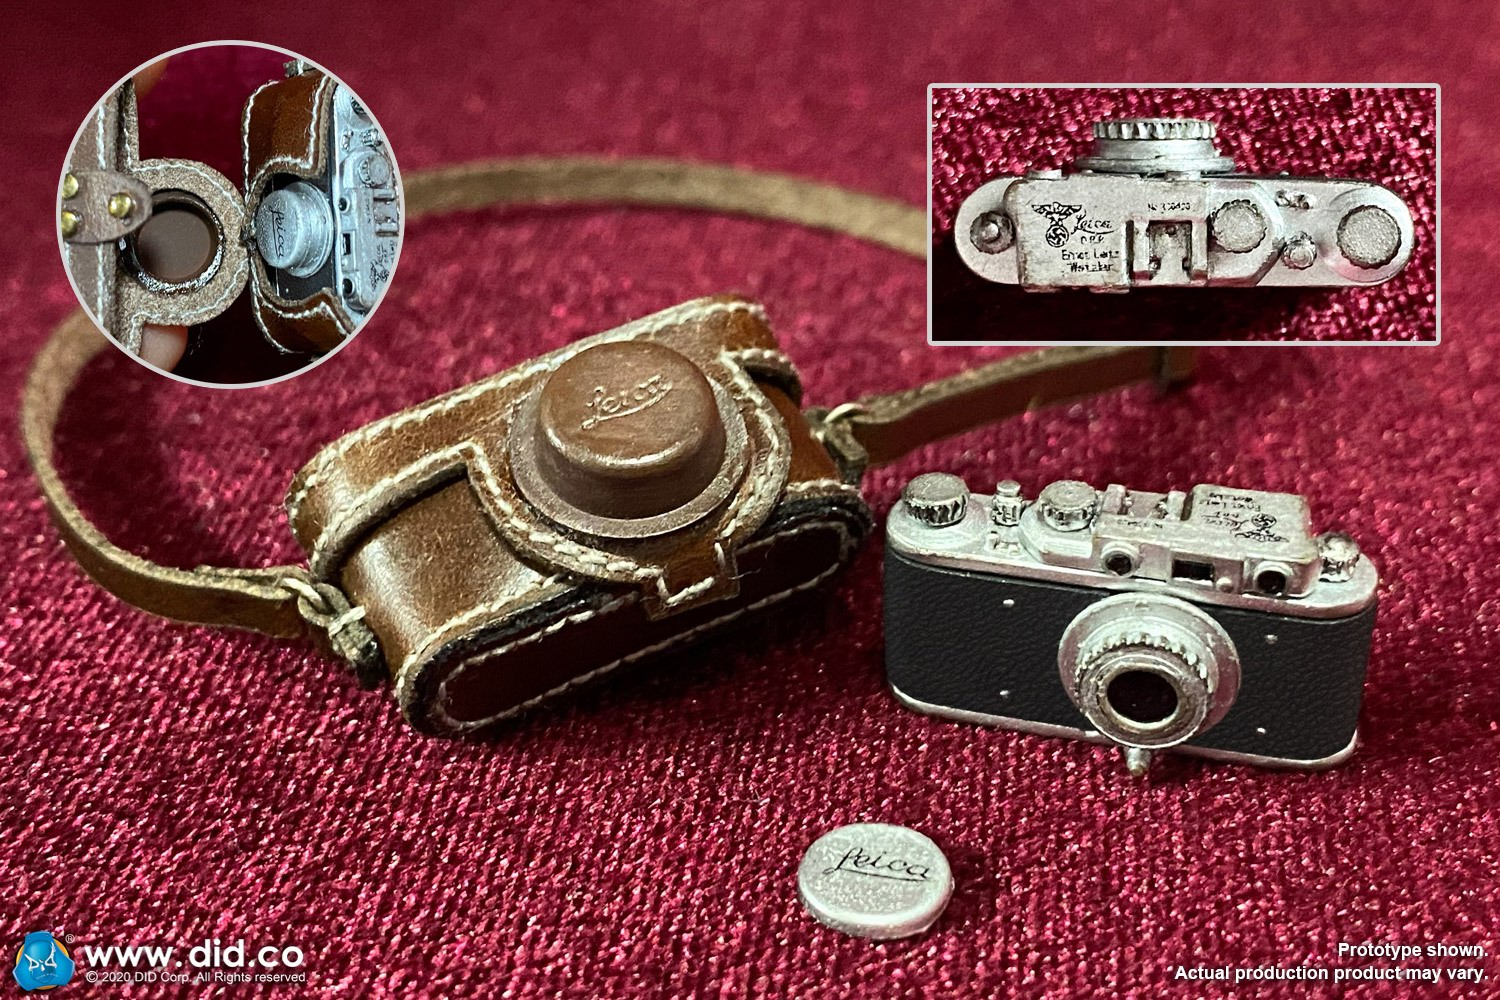 DID E60058 1_6 Leica camera with genuine leather case  8.jpg